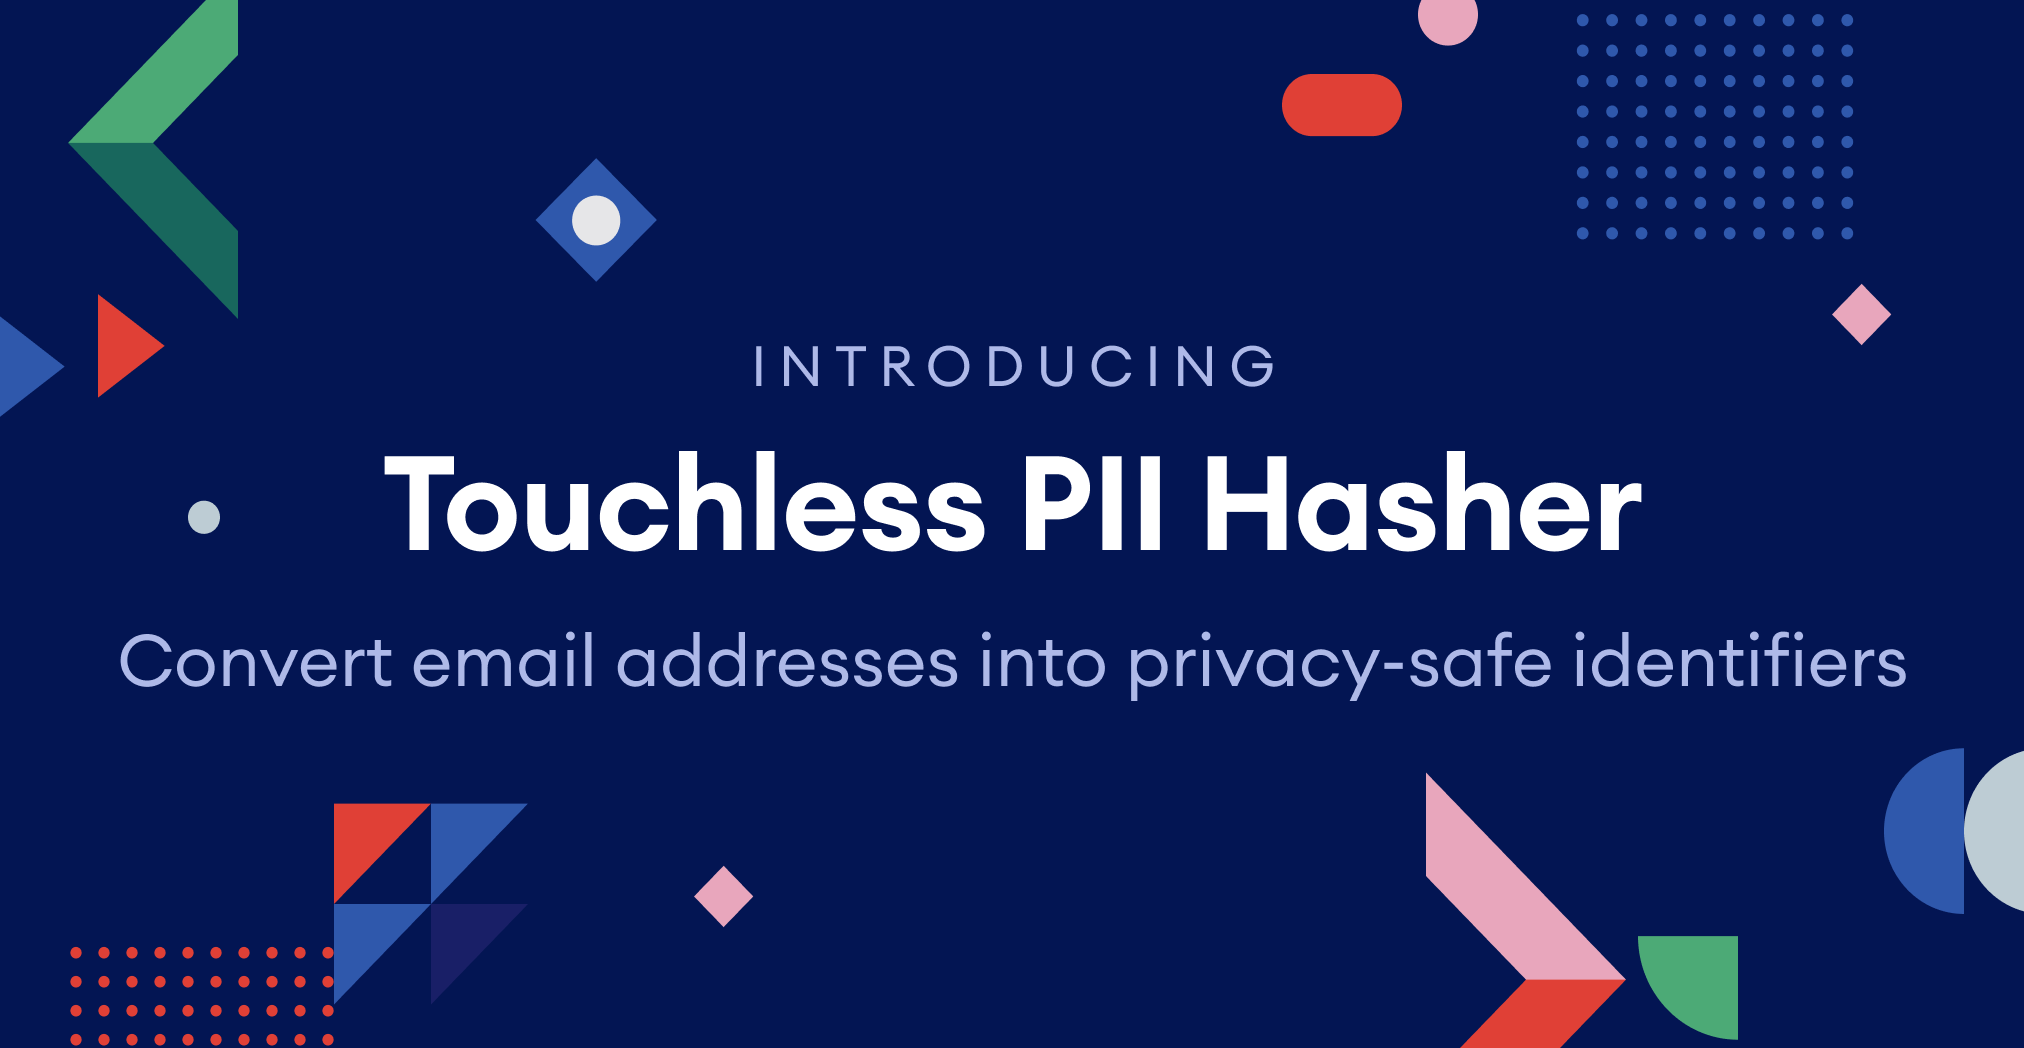 Convert email addresses into privacy-safe identifiers with Touchless PII Hasher